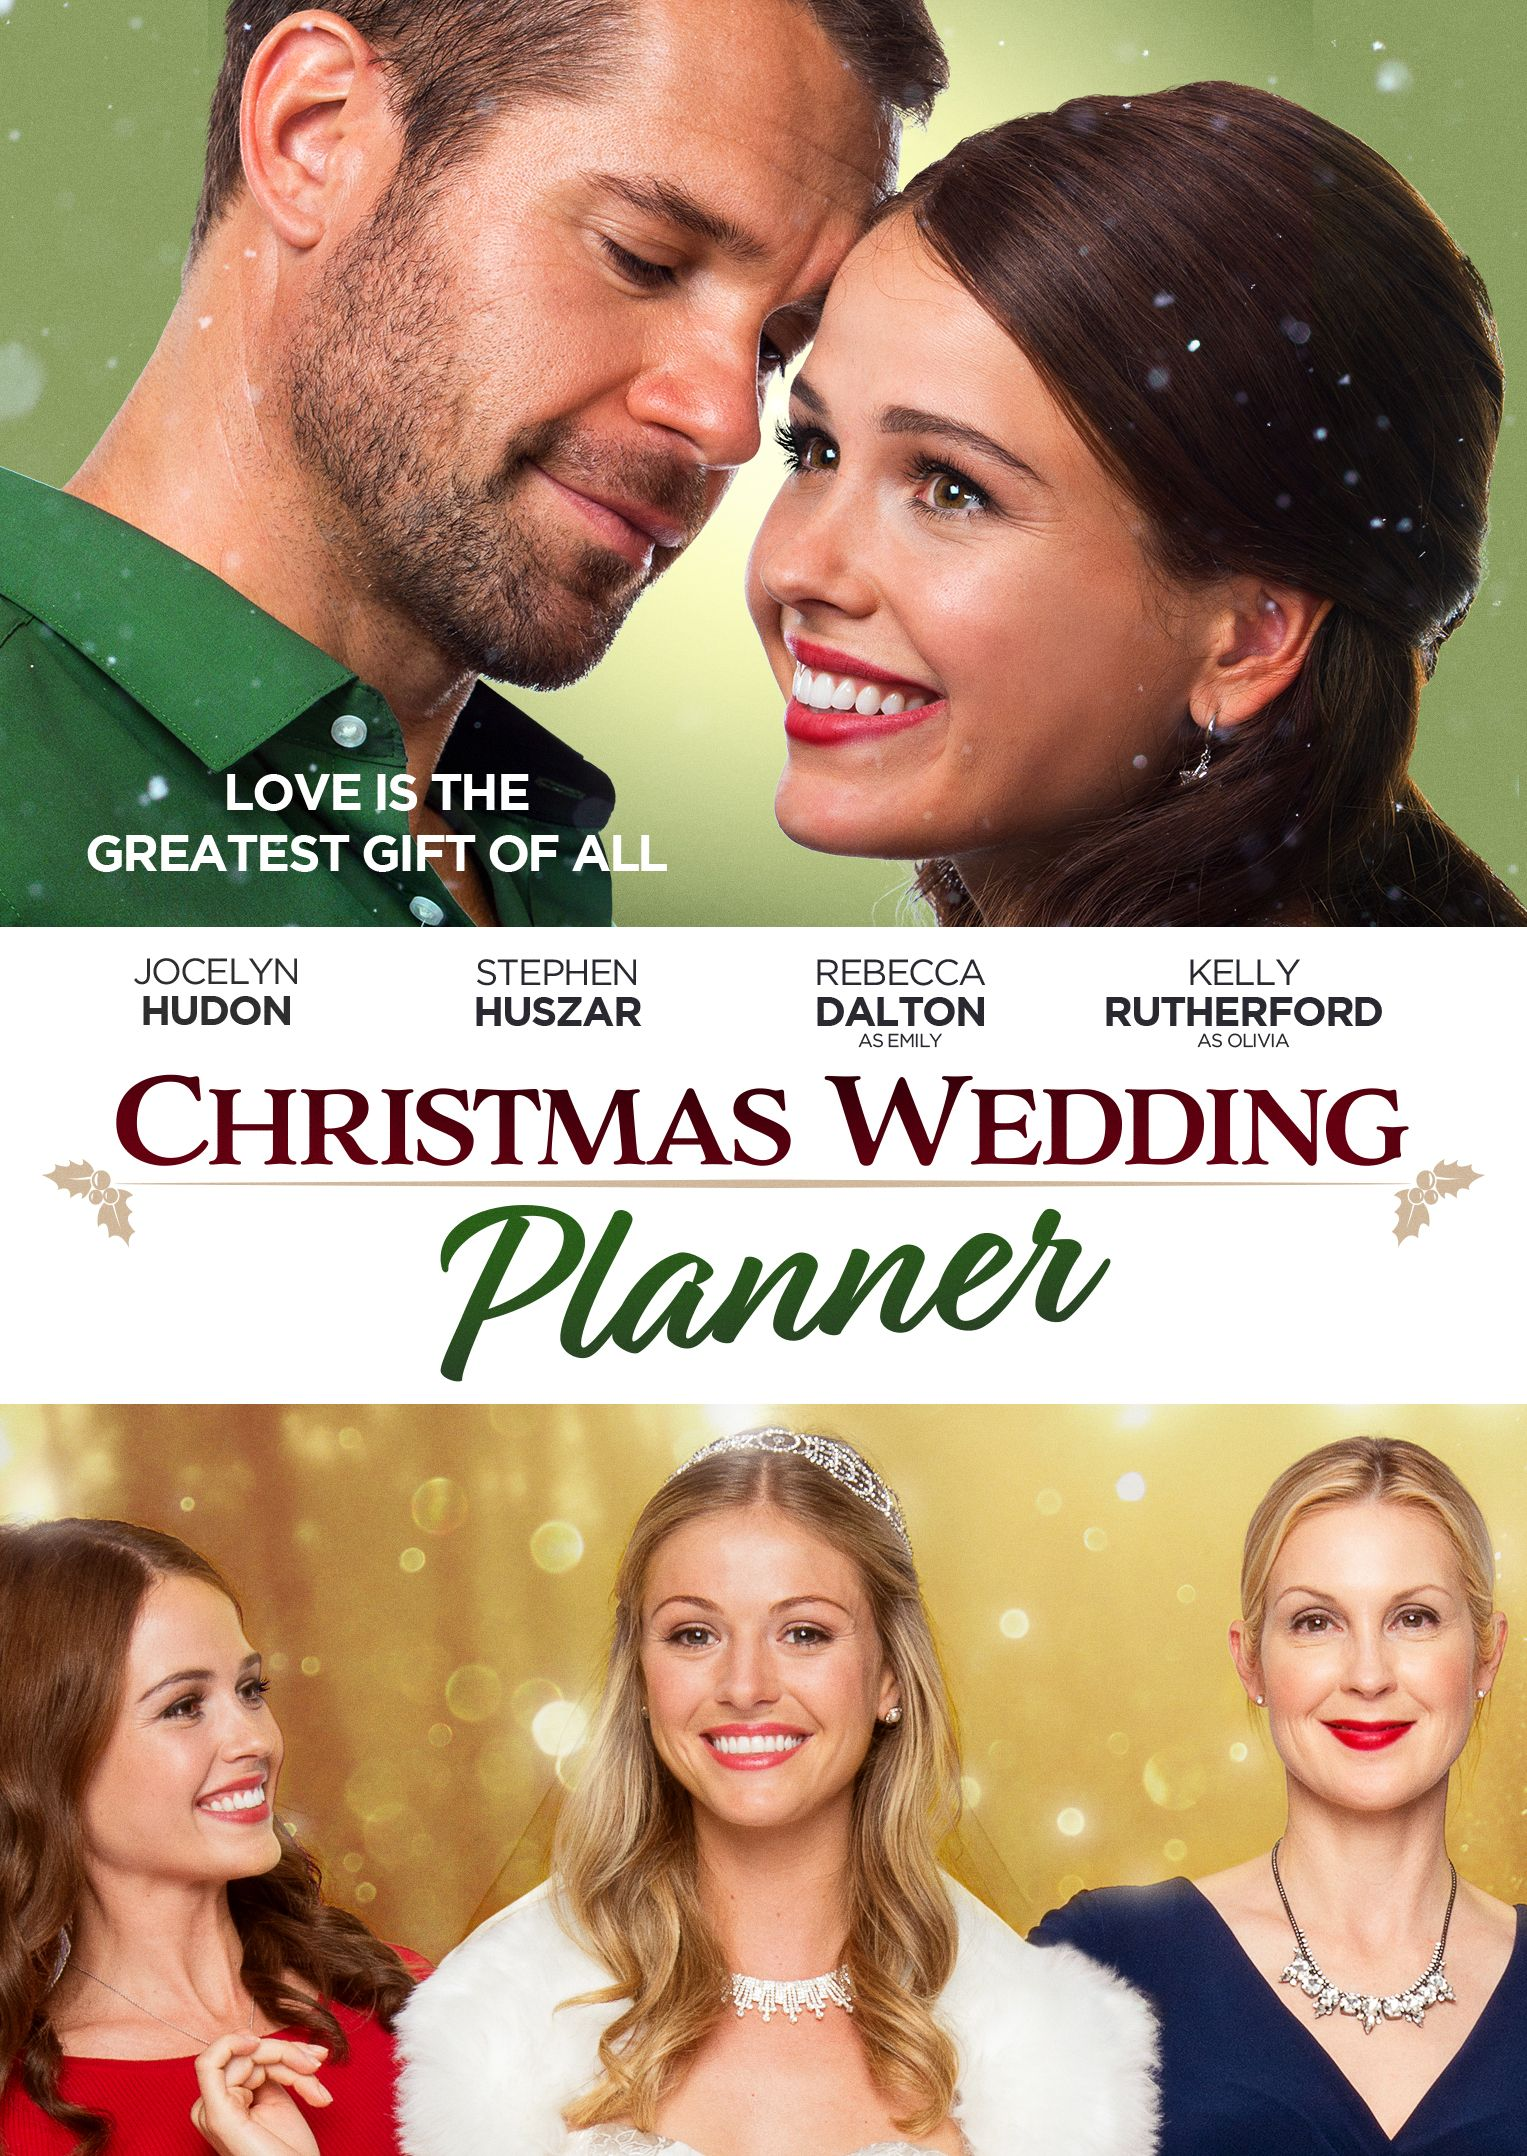 Pin By Missy Stoll On Movies Wedding Planner Movie Holiday Movie Christmas Movies